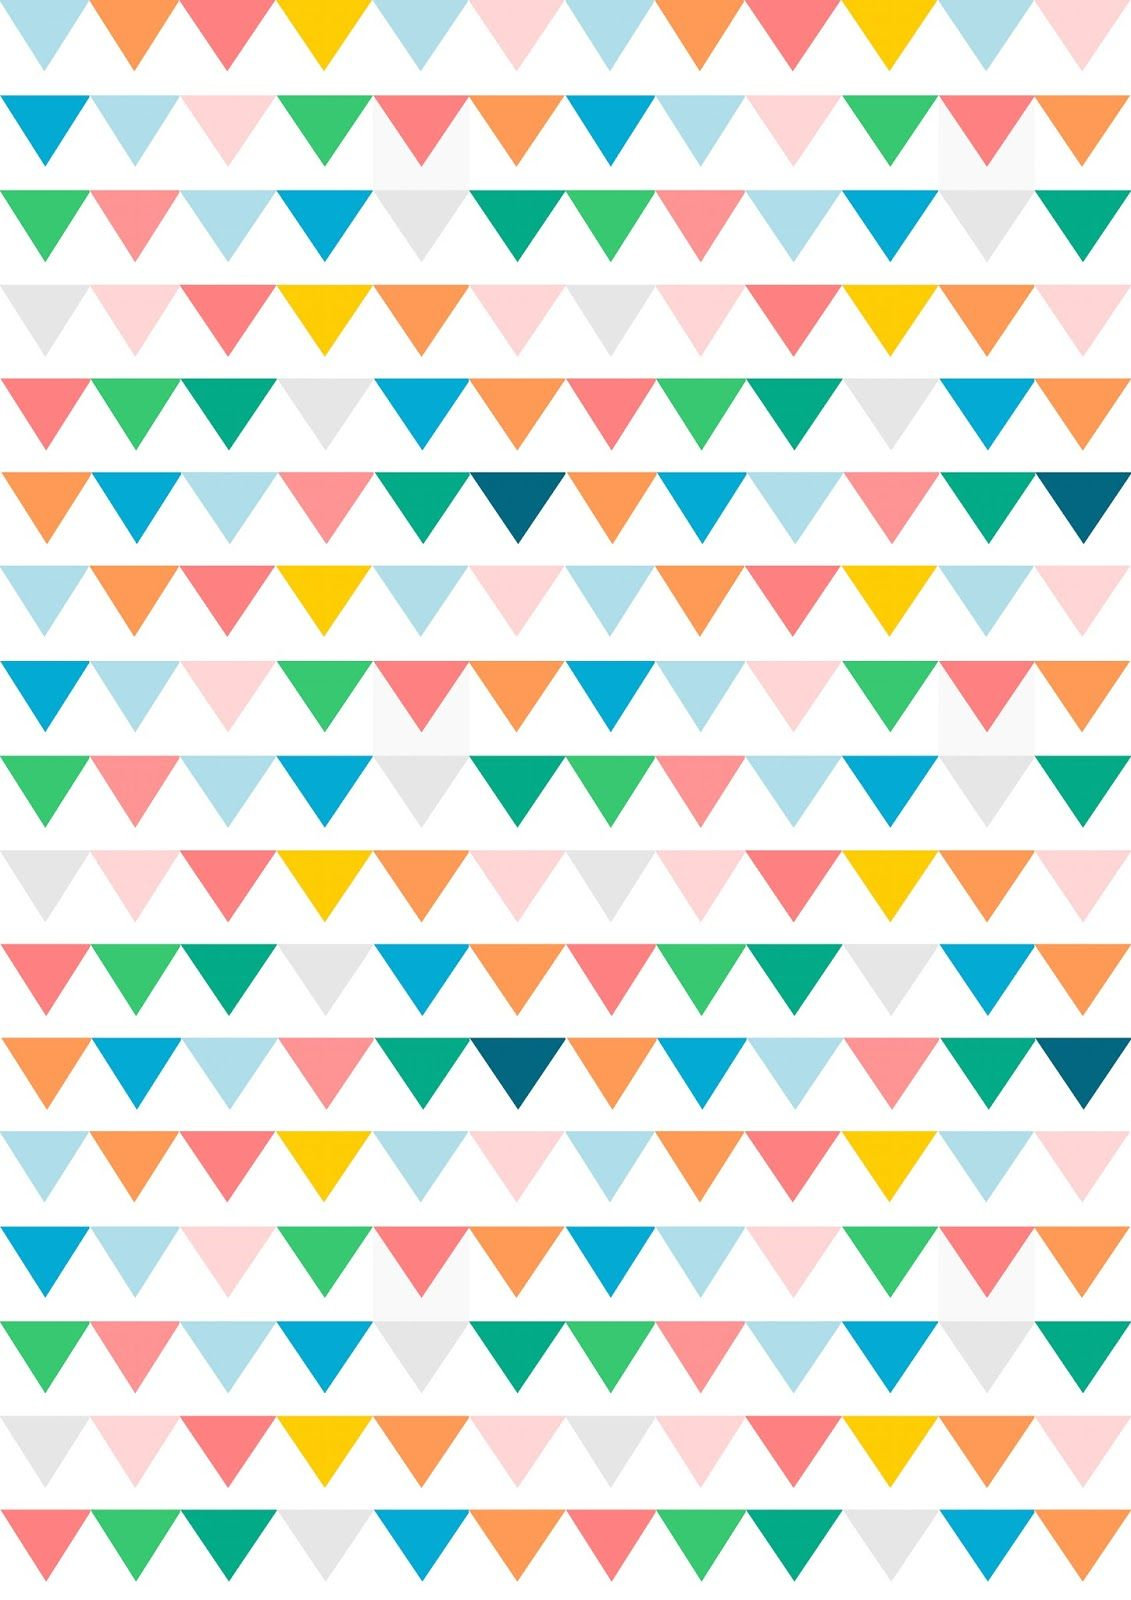 image about Printable Patterned Paper called Cost-free electronic bunting sbooking paper - ausdruckbares